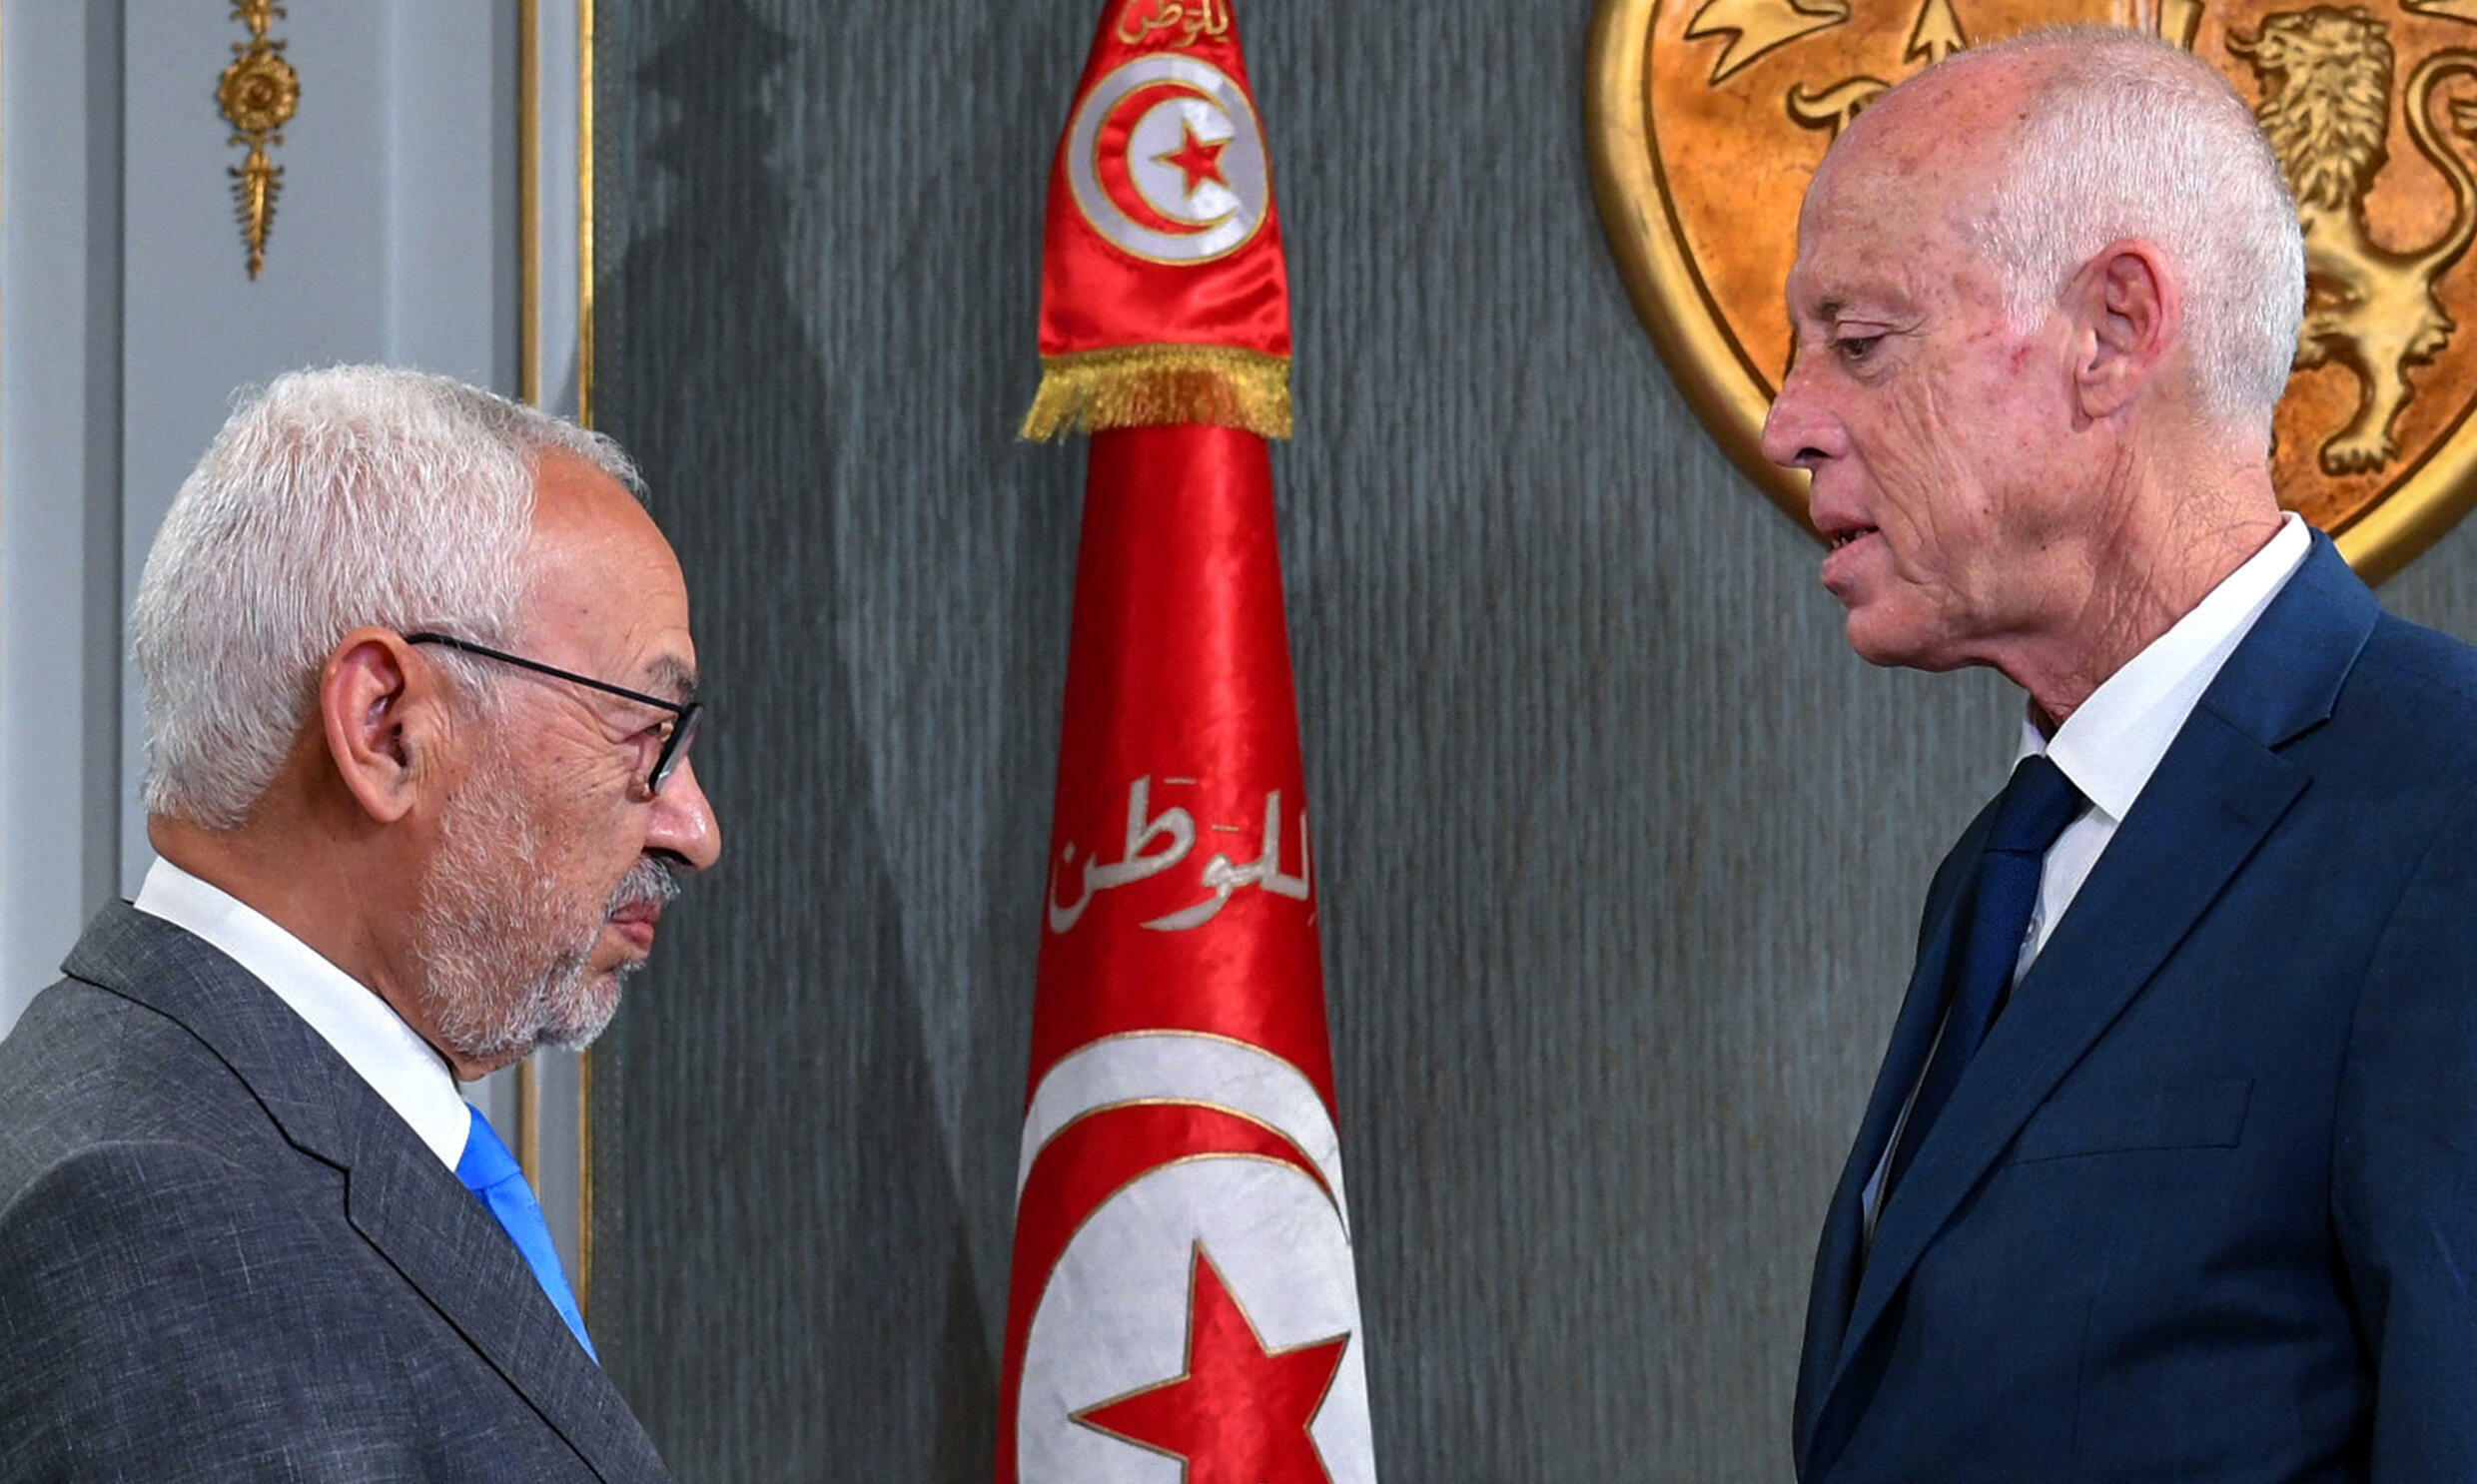 Tunisia's President Kais Saied (R) receives Ennahdha leader and parliament speaker Rached Ghannouchi at the presidential palace in this file picture taken on November 15, 2019